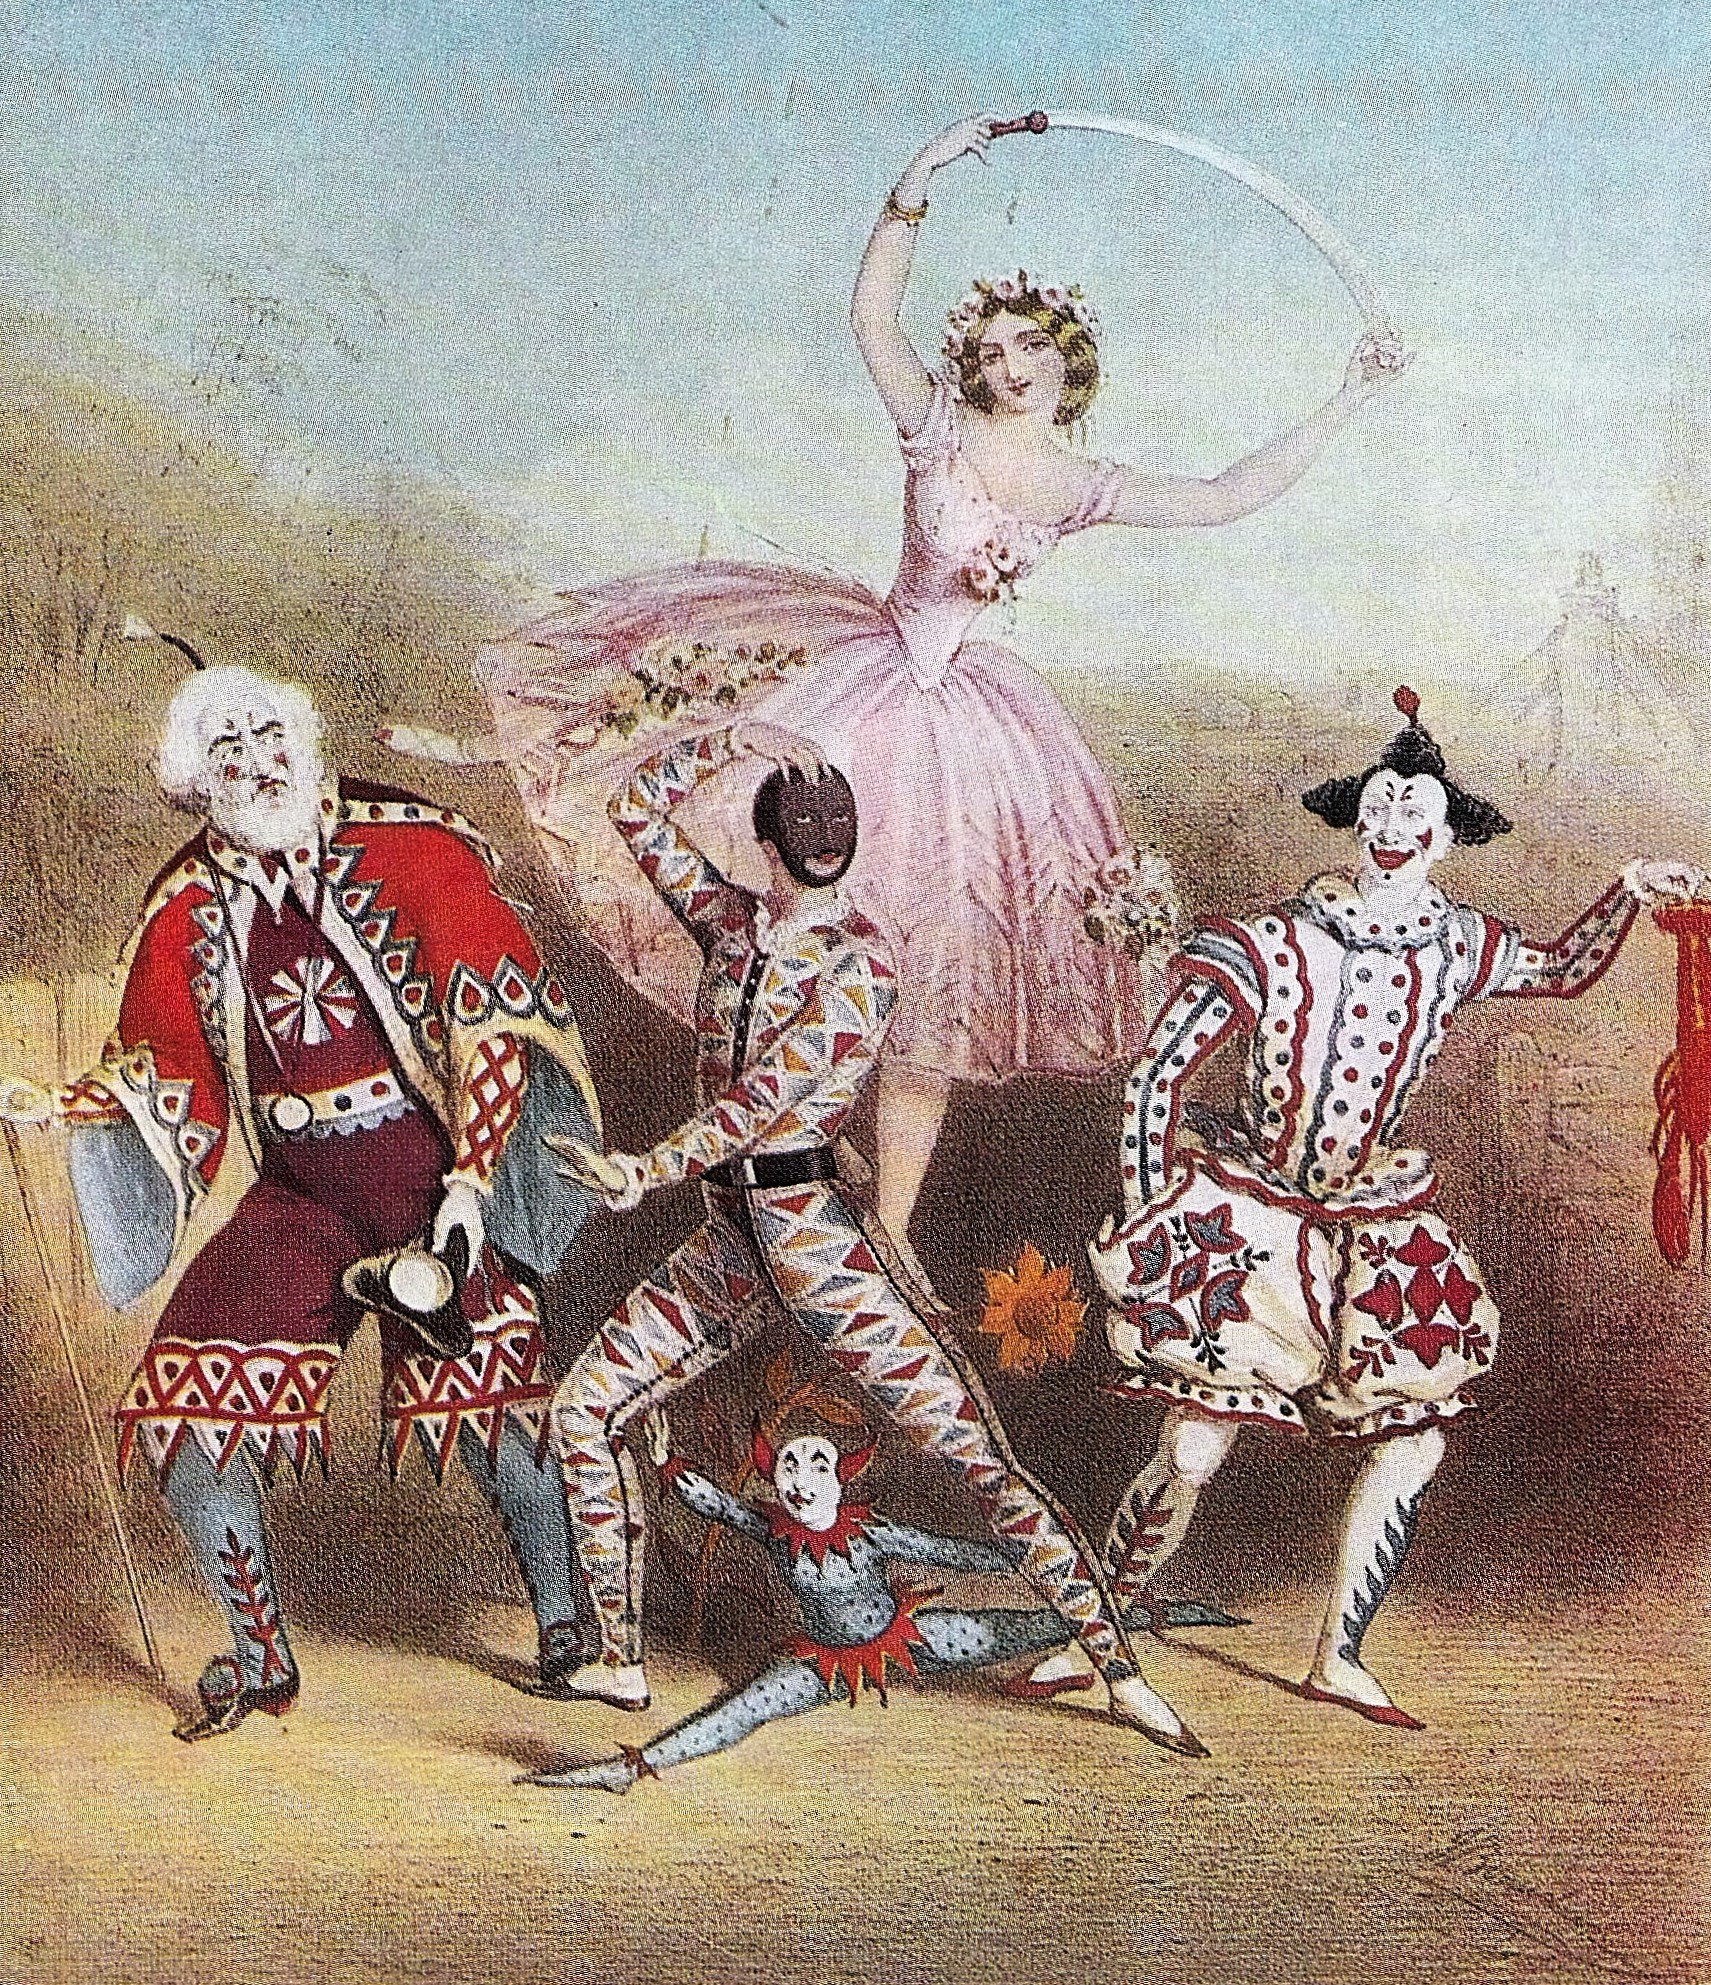 Image 10 - A Harlequinade scene from 'King of the Castle' or 'Harlequin, Prince Diamond and Princess Bright Eyes' attributed John Brandard,c. 1858.adj.